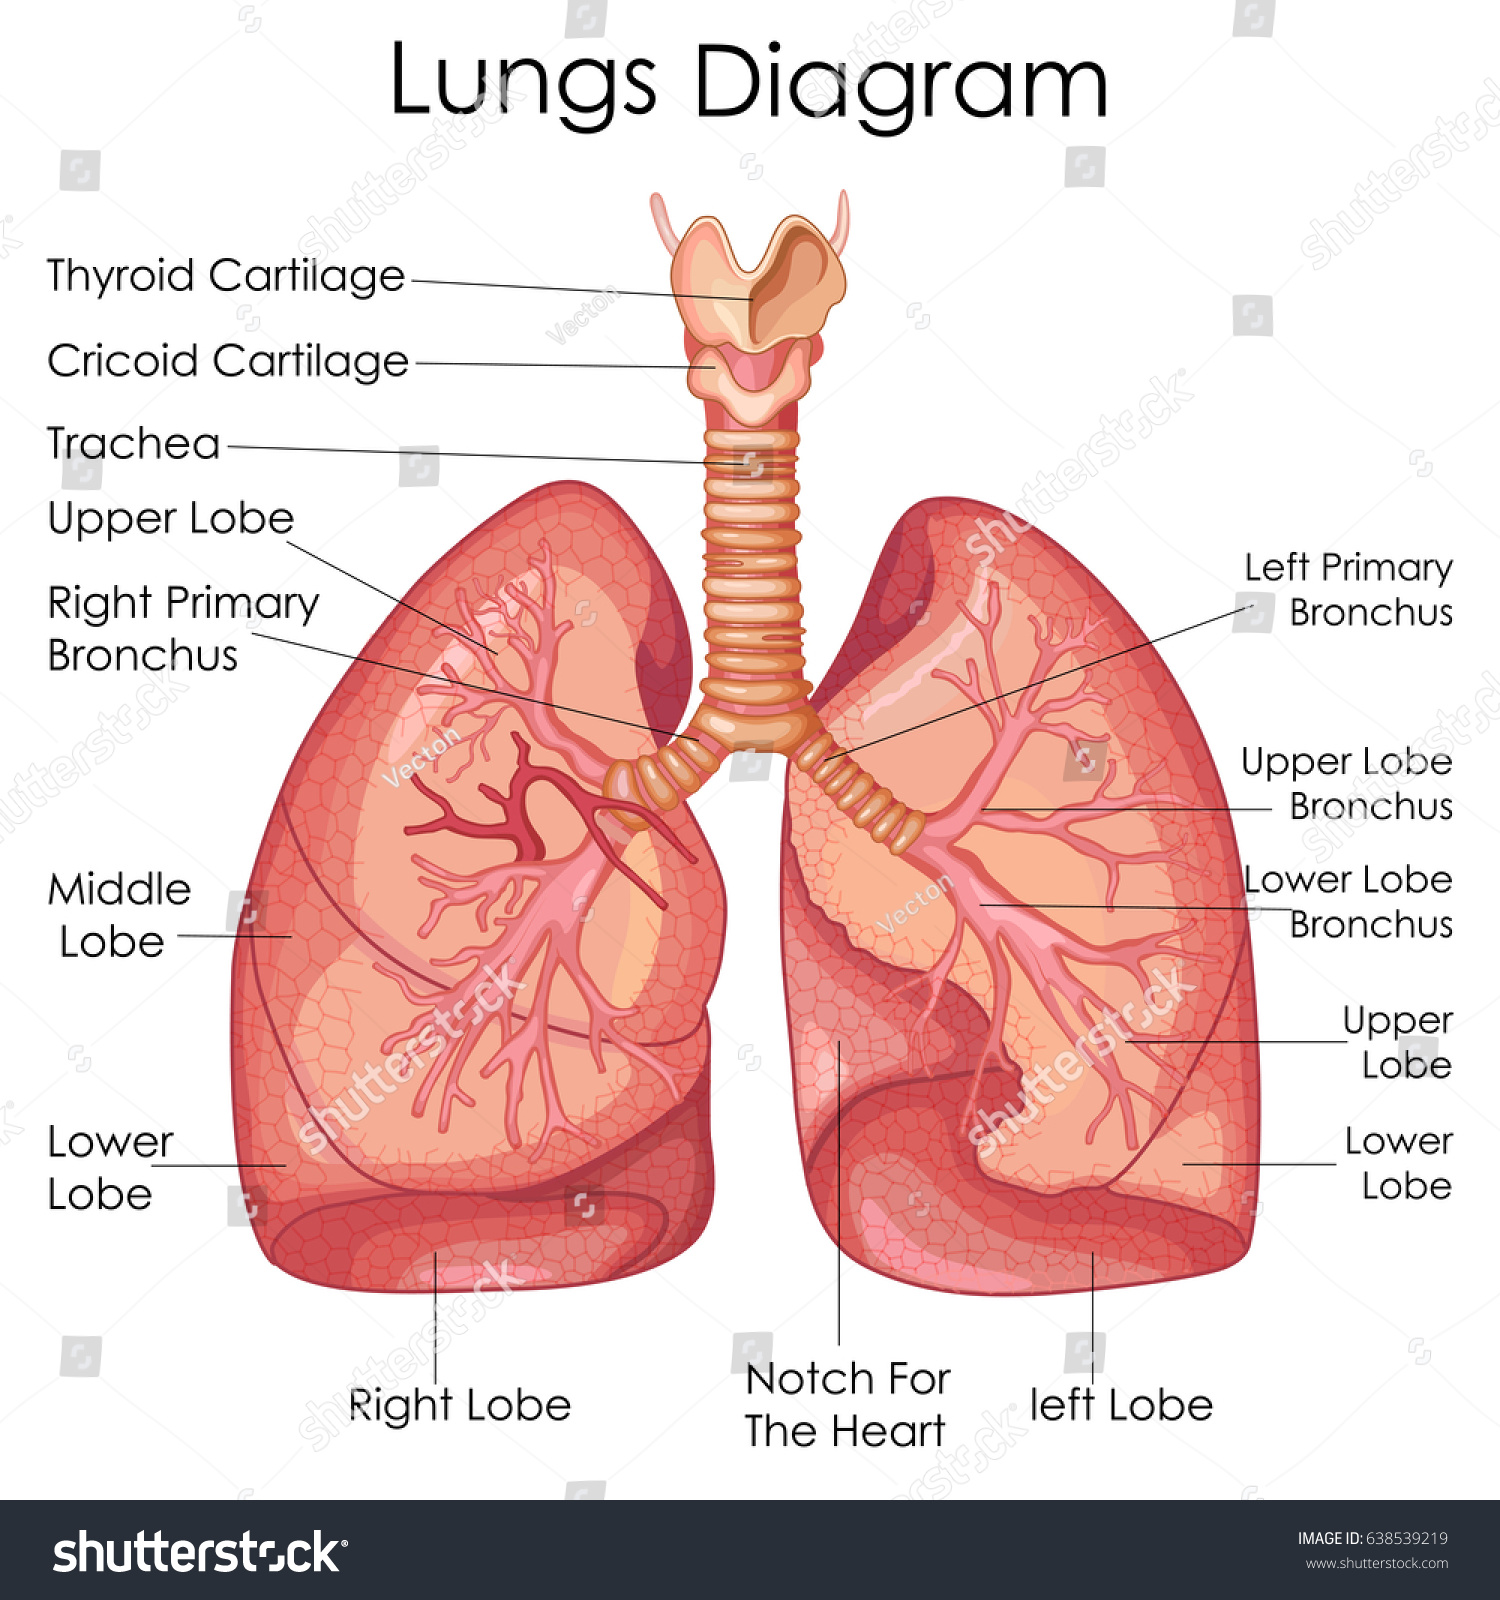 hight resolution of medical education chart of biology for lungs diagram vector illustration